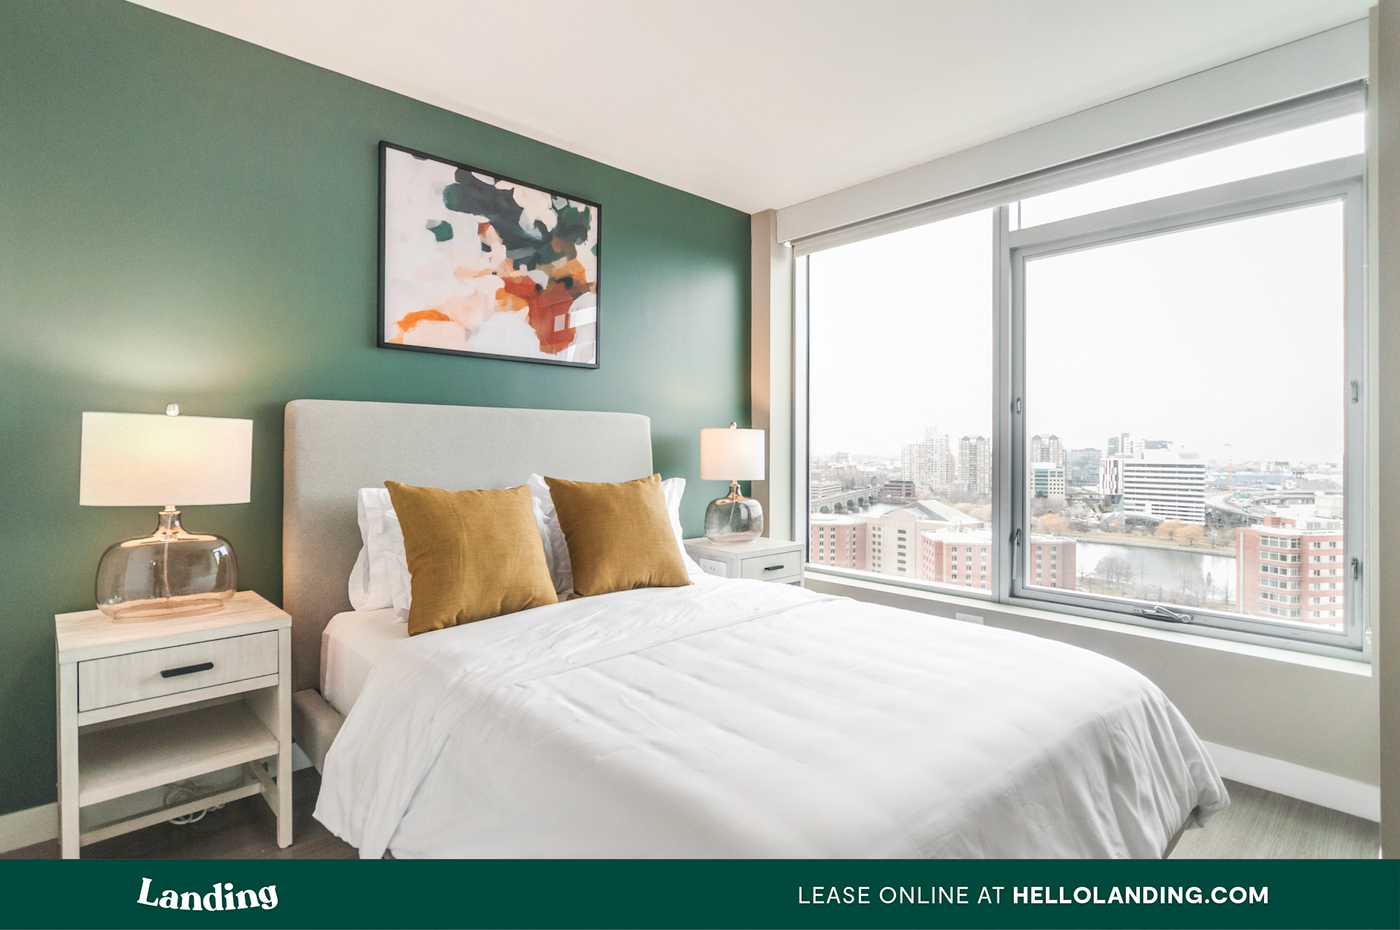 Landing Furnished Apartment Aviator Apartment Homes